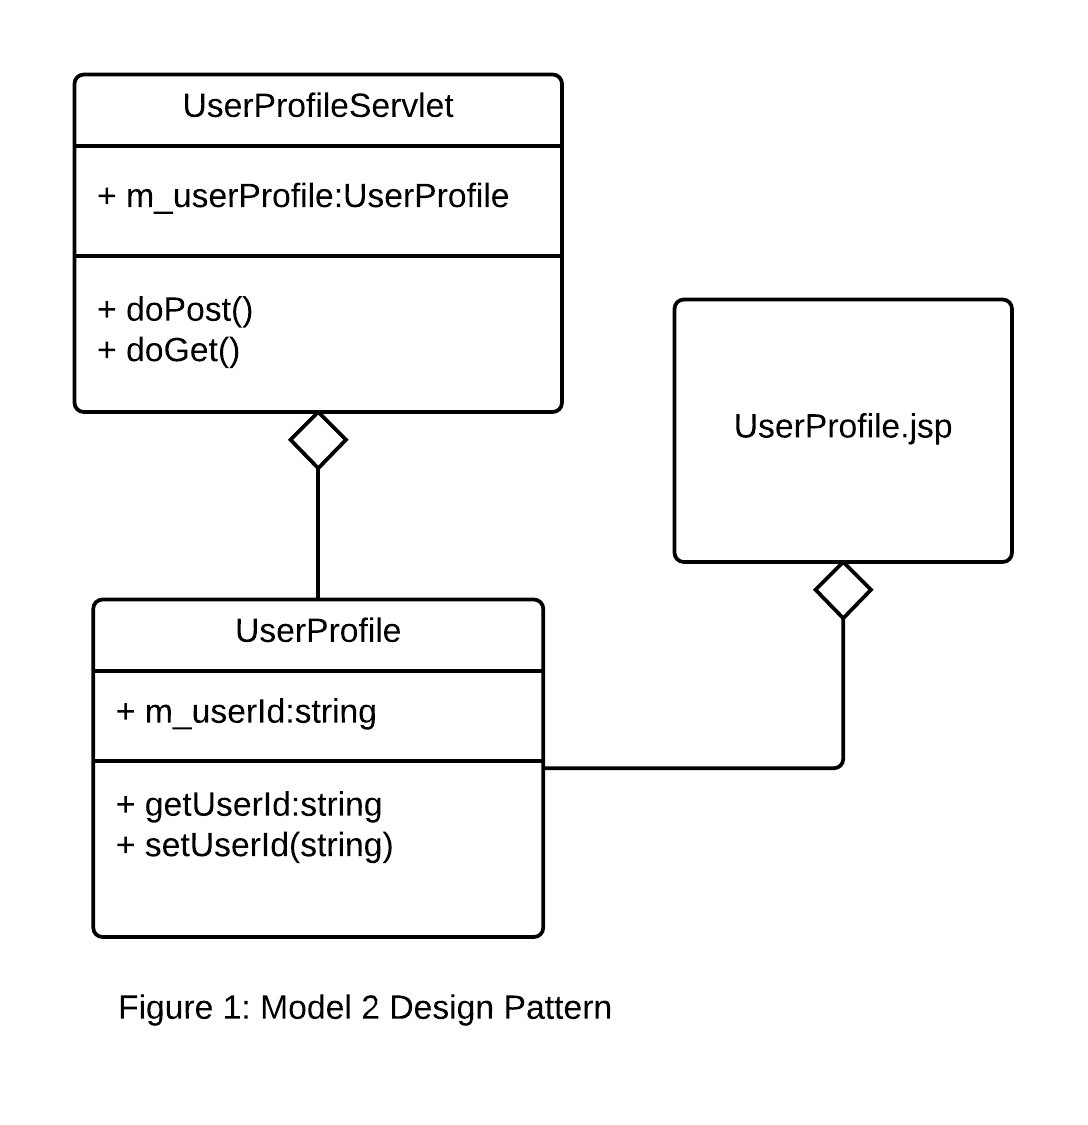 Using Containers To Build A Microservices Architecture How Create Diagrams For Amazon Web Services Involved Putting Application Code Into Java Servlets Data Classes Called Beans And View Logic Server Pages As Shown In Figure 1